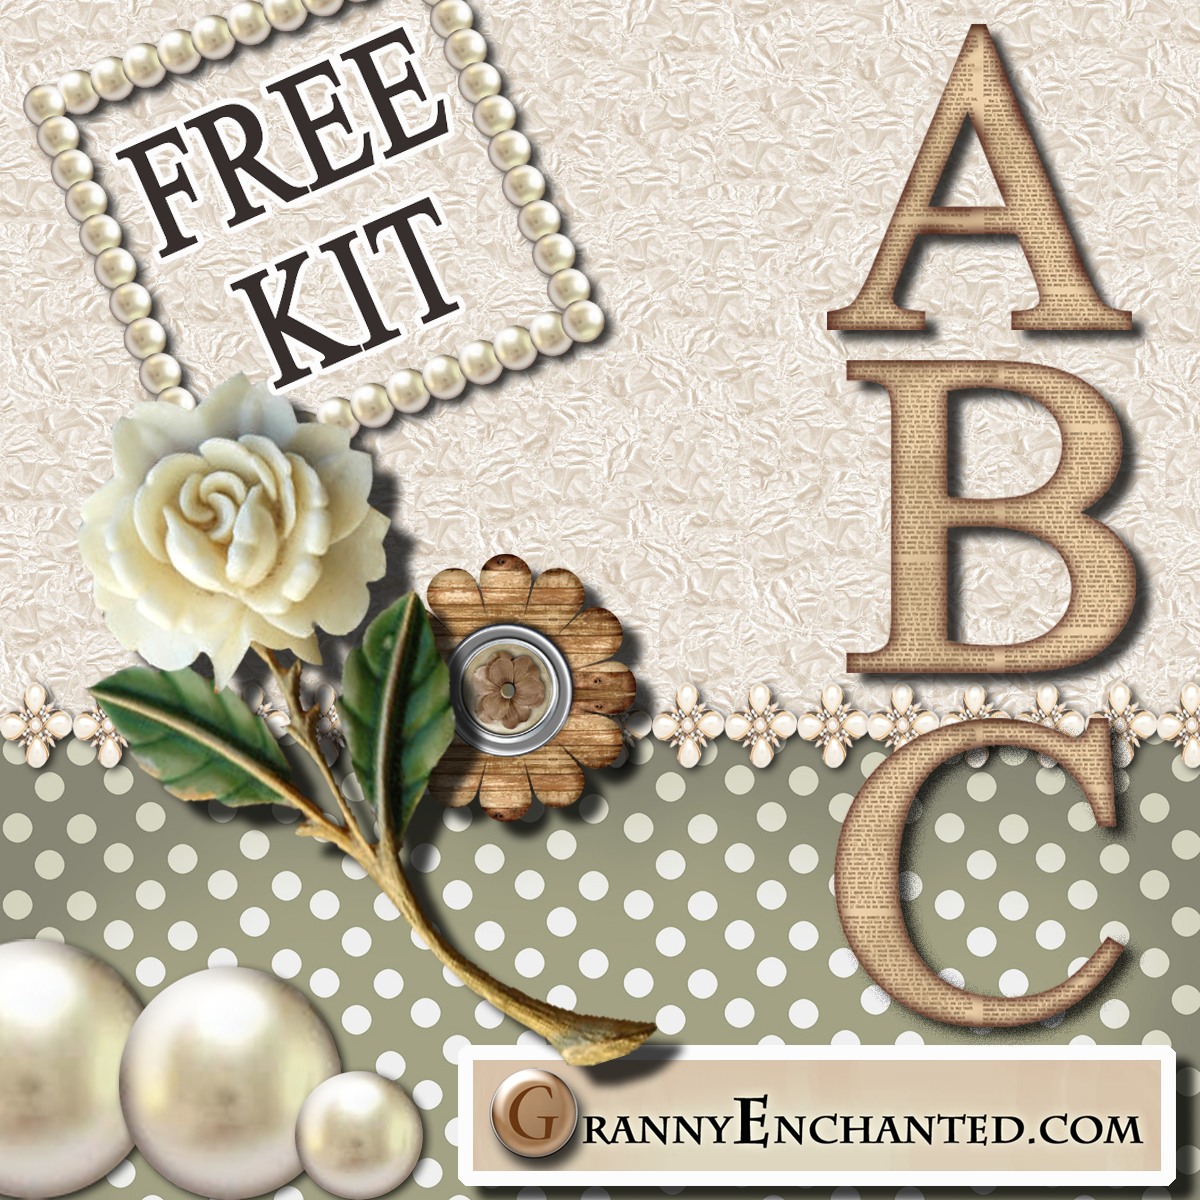 Effortless image with regard to free printable scrapbook embellishments